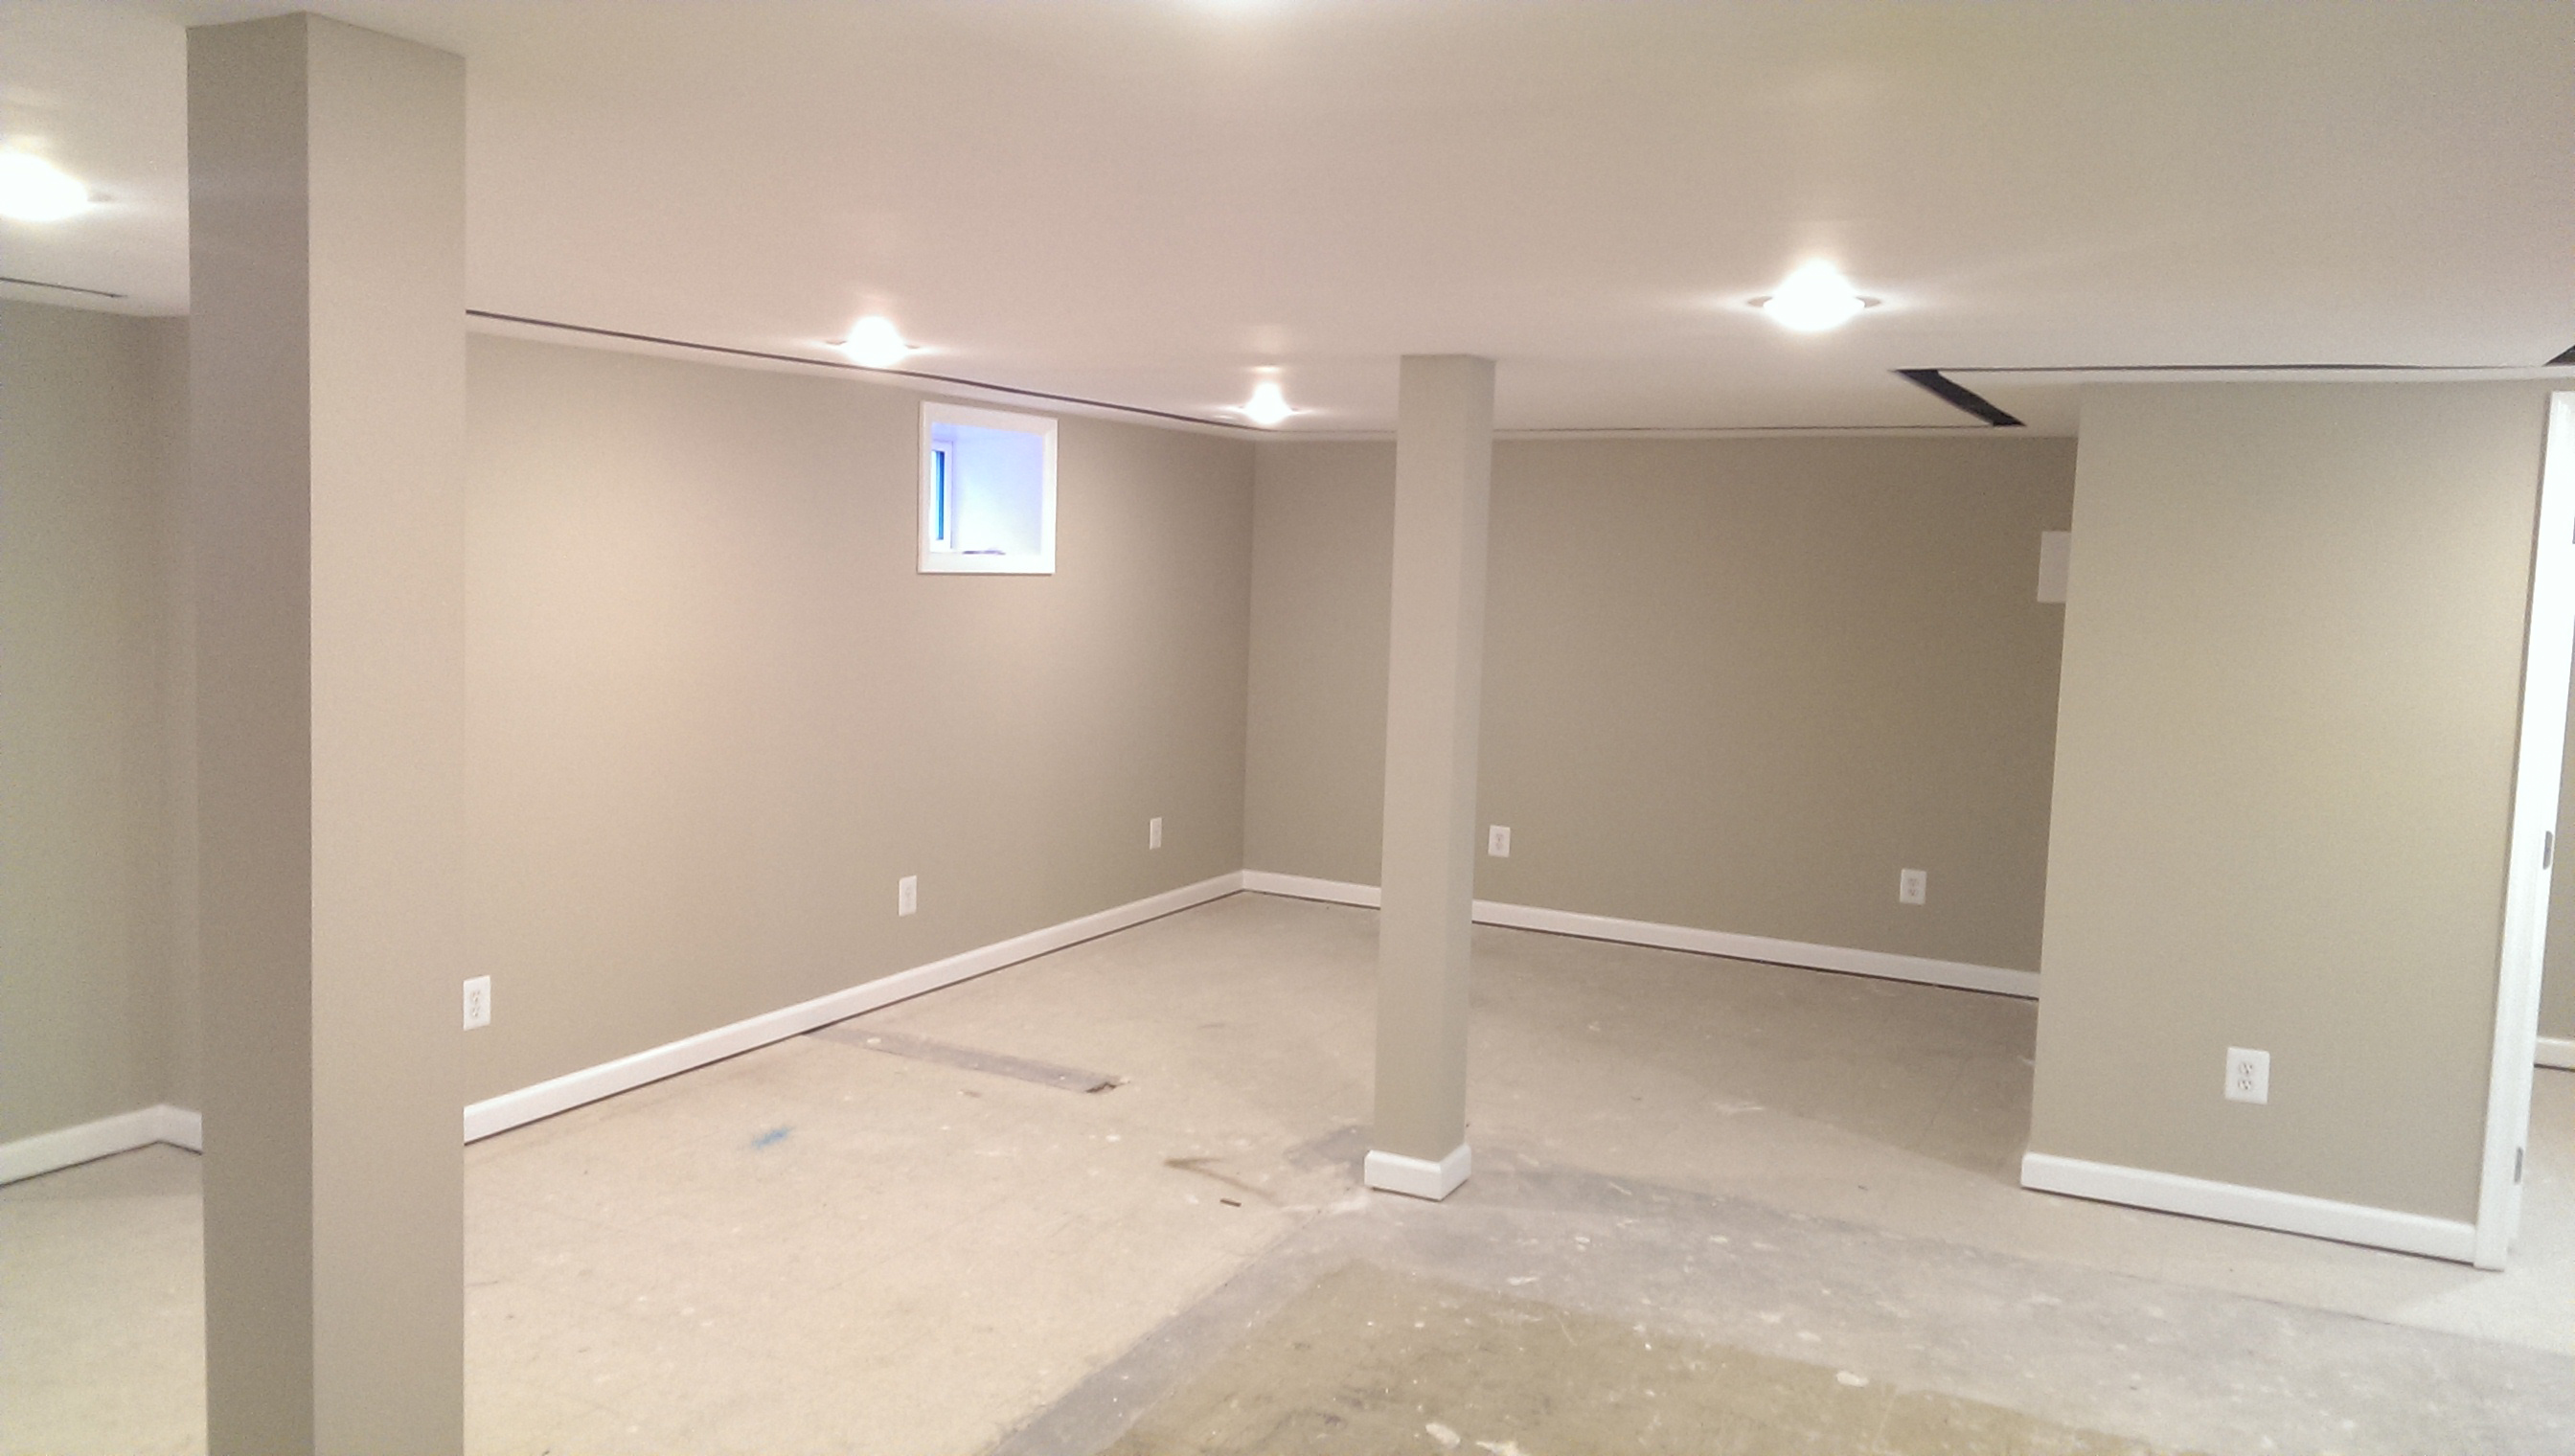 Basement Remodel Job in Centreville, VA